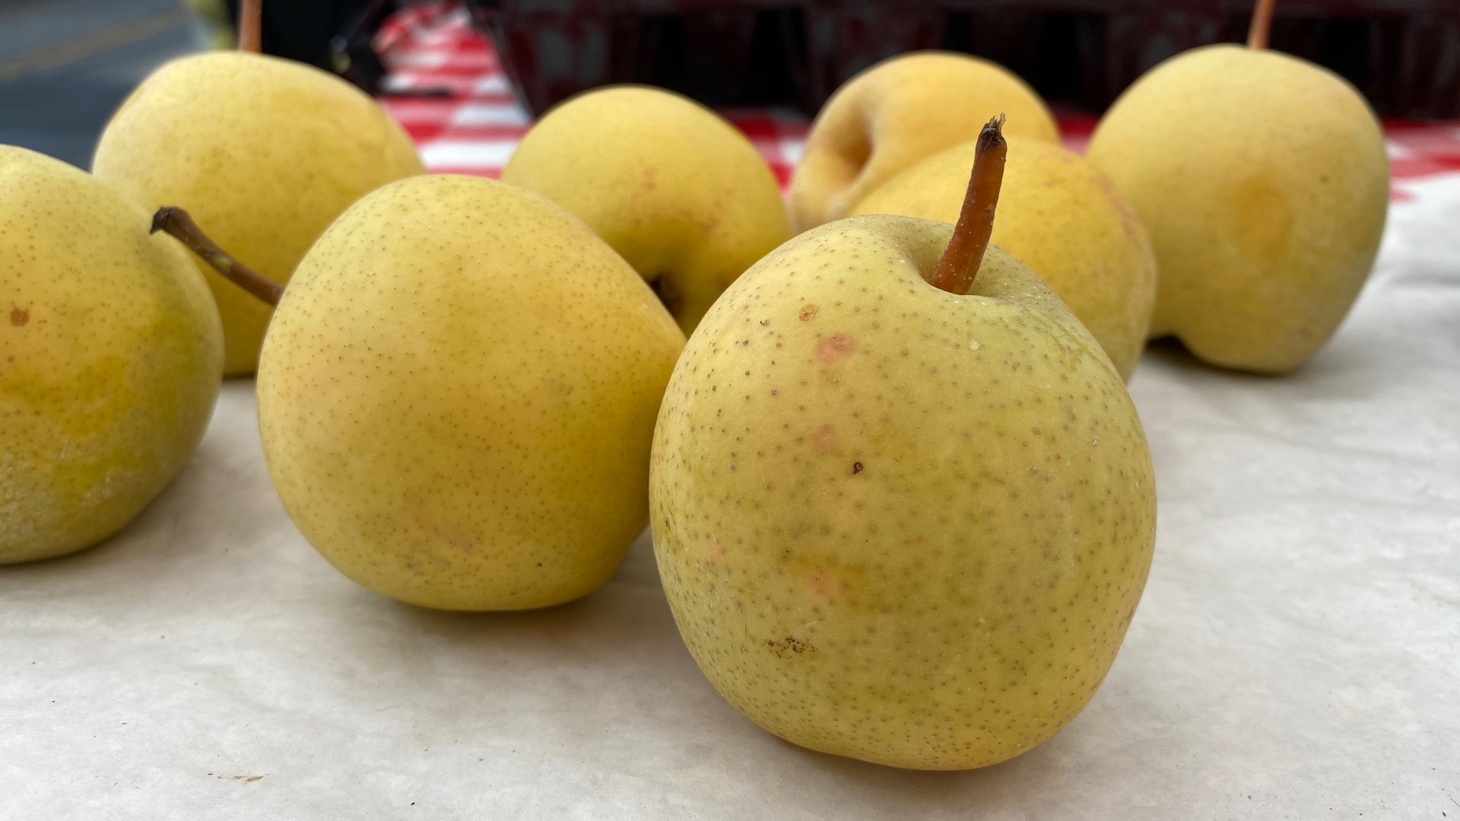 The acidity makes the Monterrey pears from Terry Ranch unique.